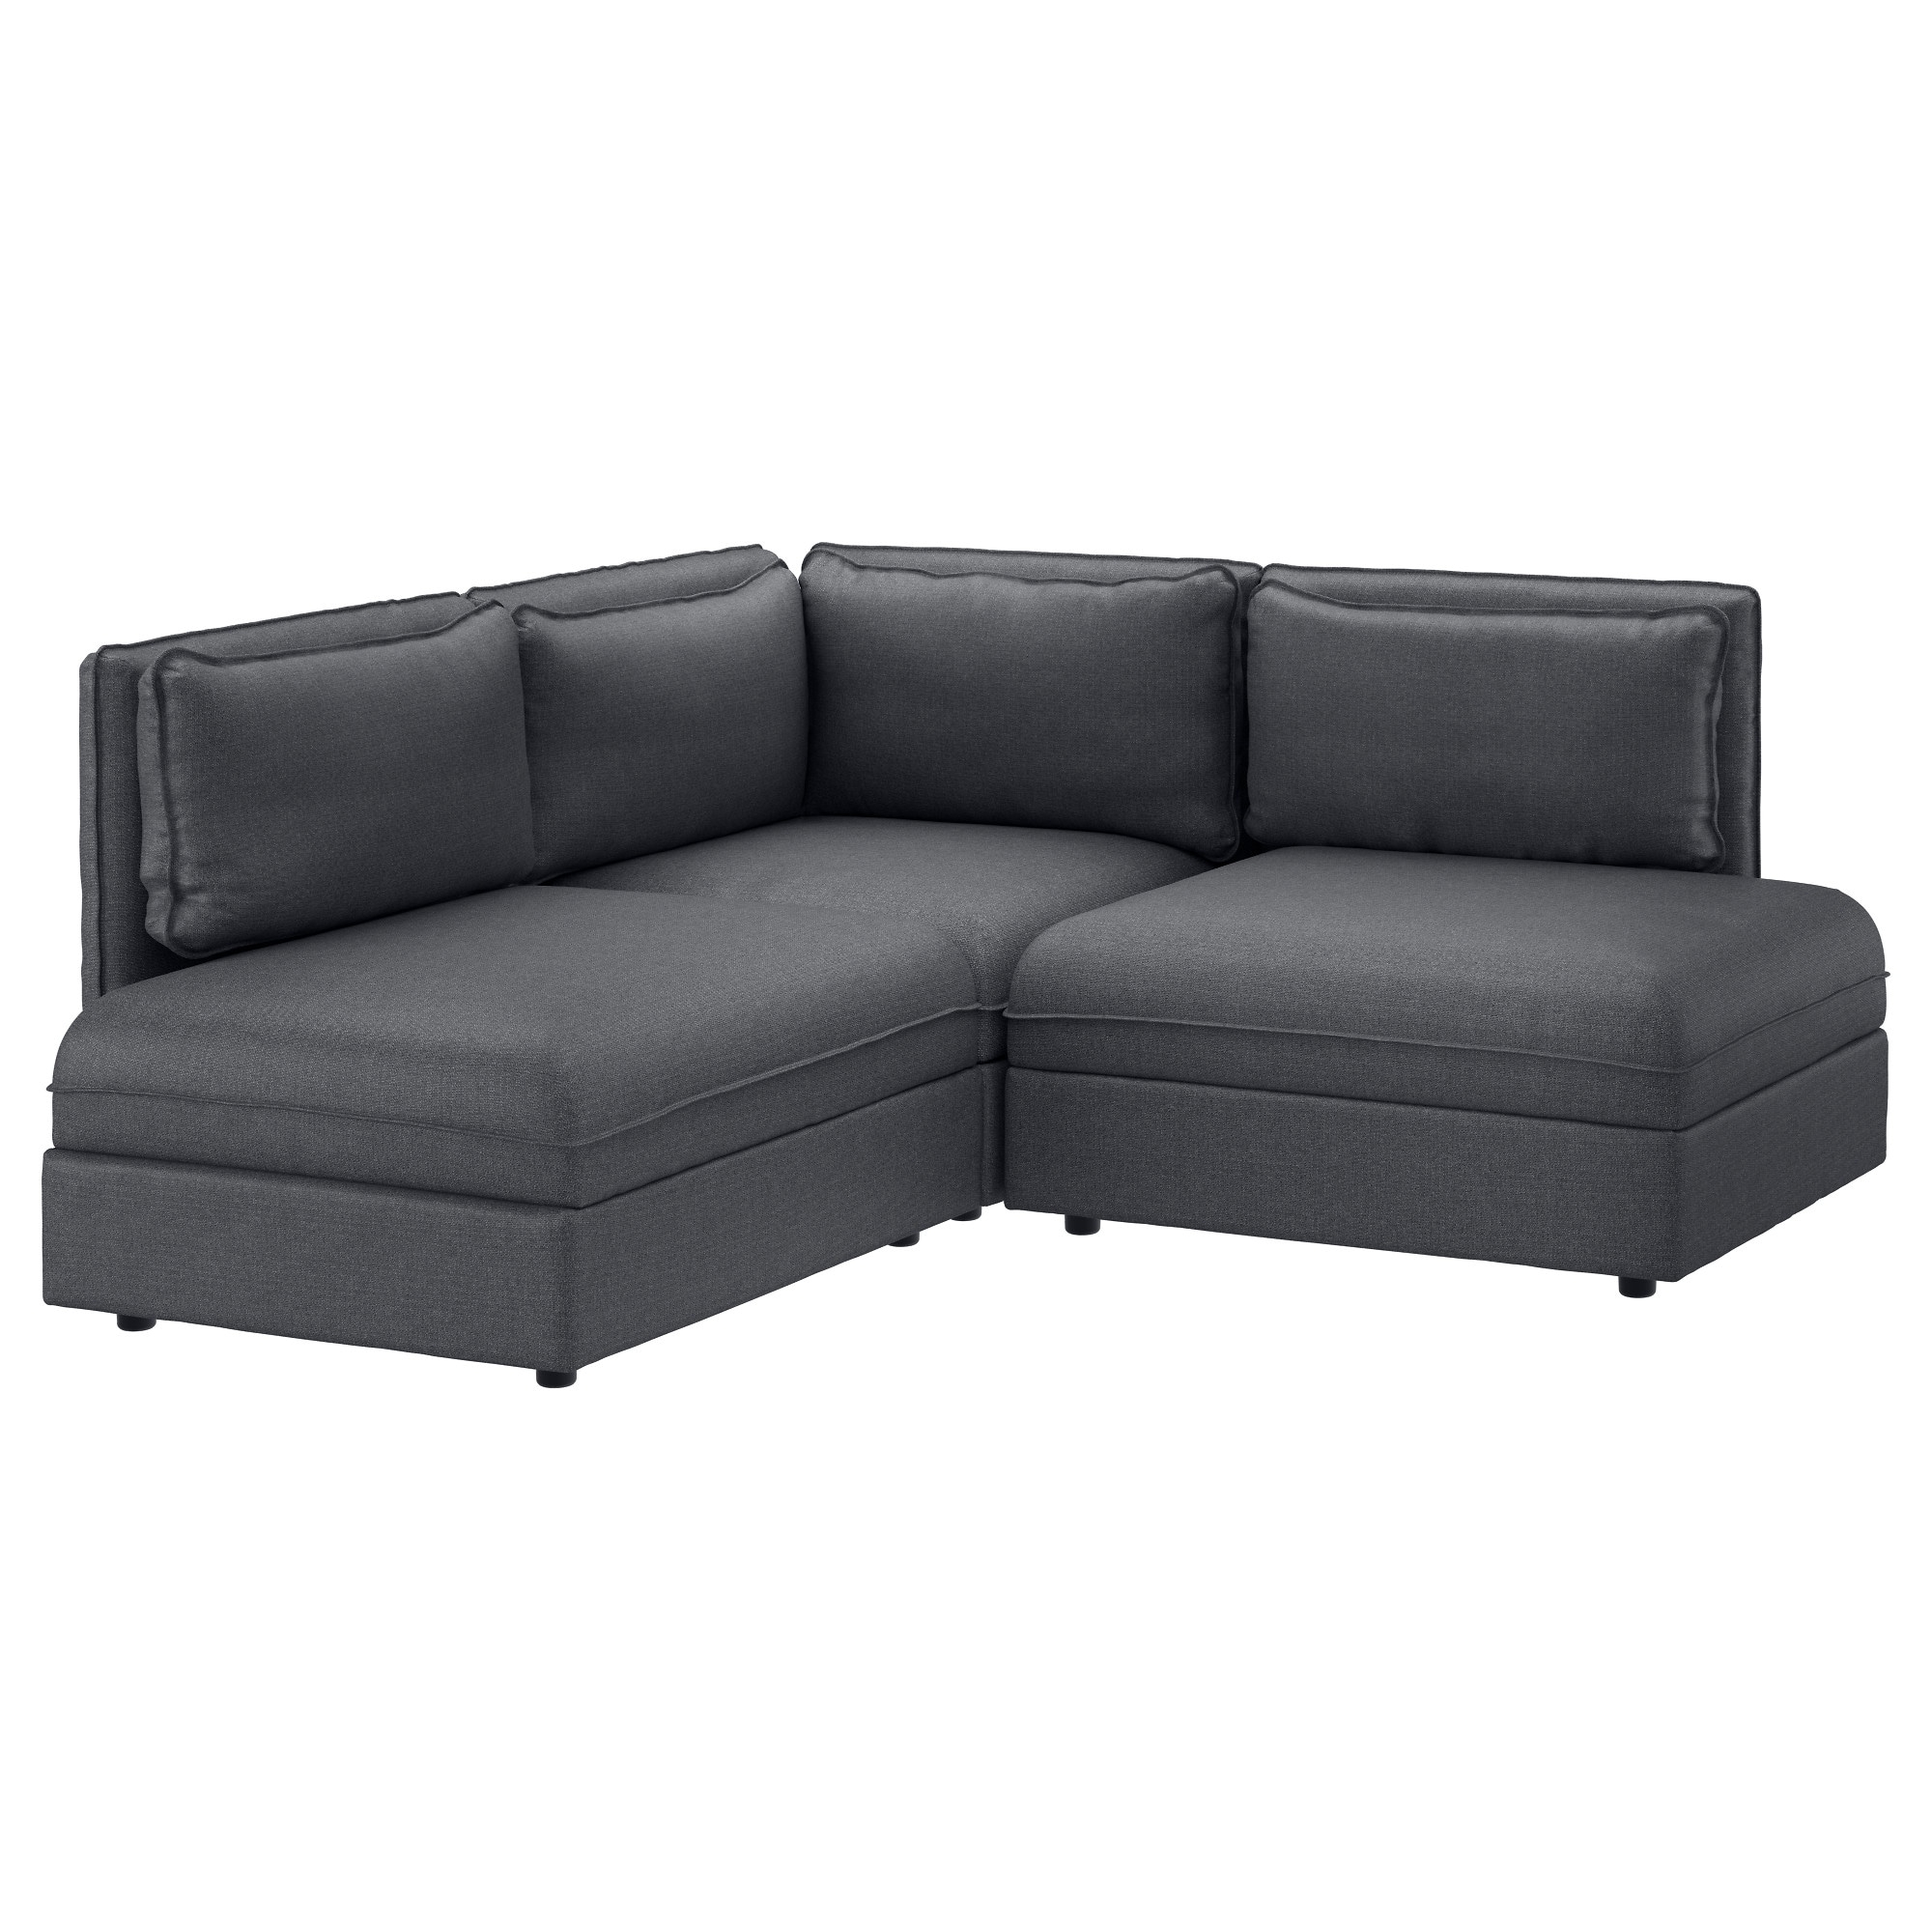 Ikea Fabric Corner Sofas | Ireland - Dublin inside Lucy Dark Grey Sofa Chairs